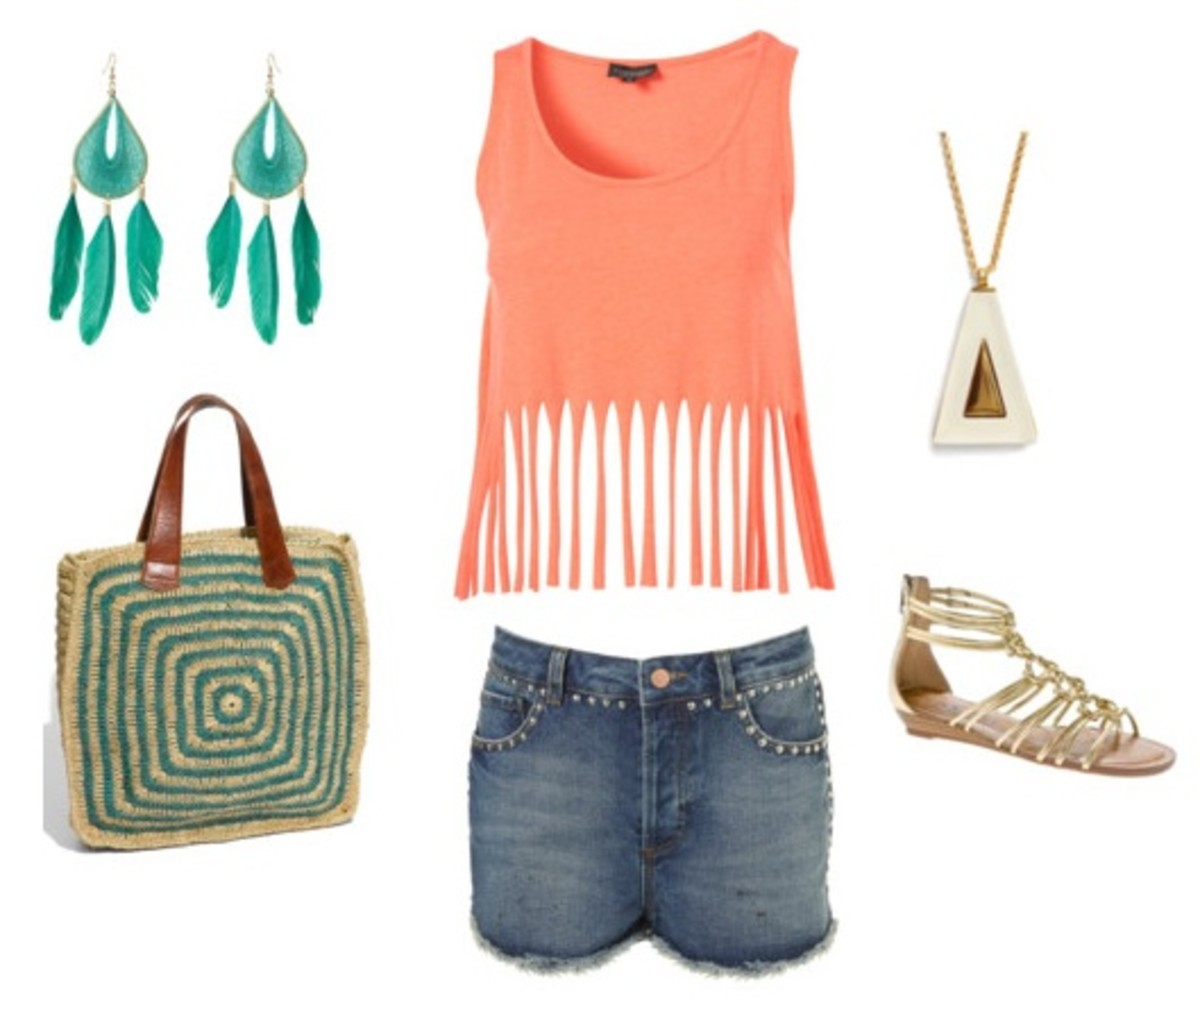 blue-med-mini-skirt-peach-top-crop-green-earrings-necklace-pend-tan-shoe-sandals-green-bag-tote-turquoise-spring-summer-weekend.jpg